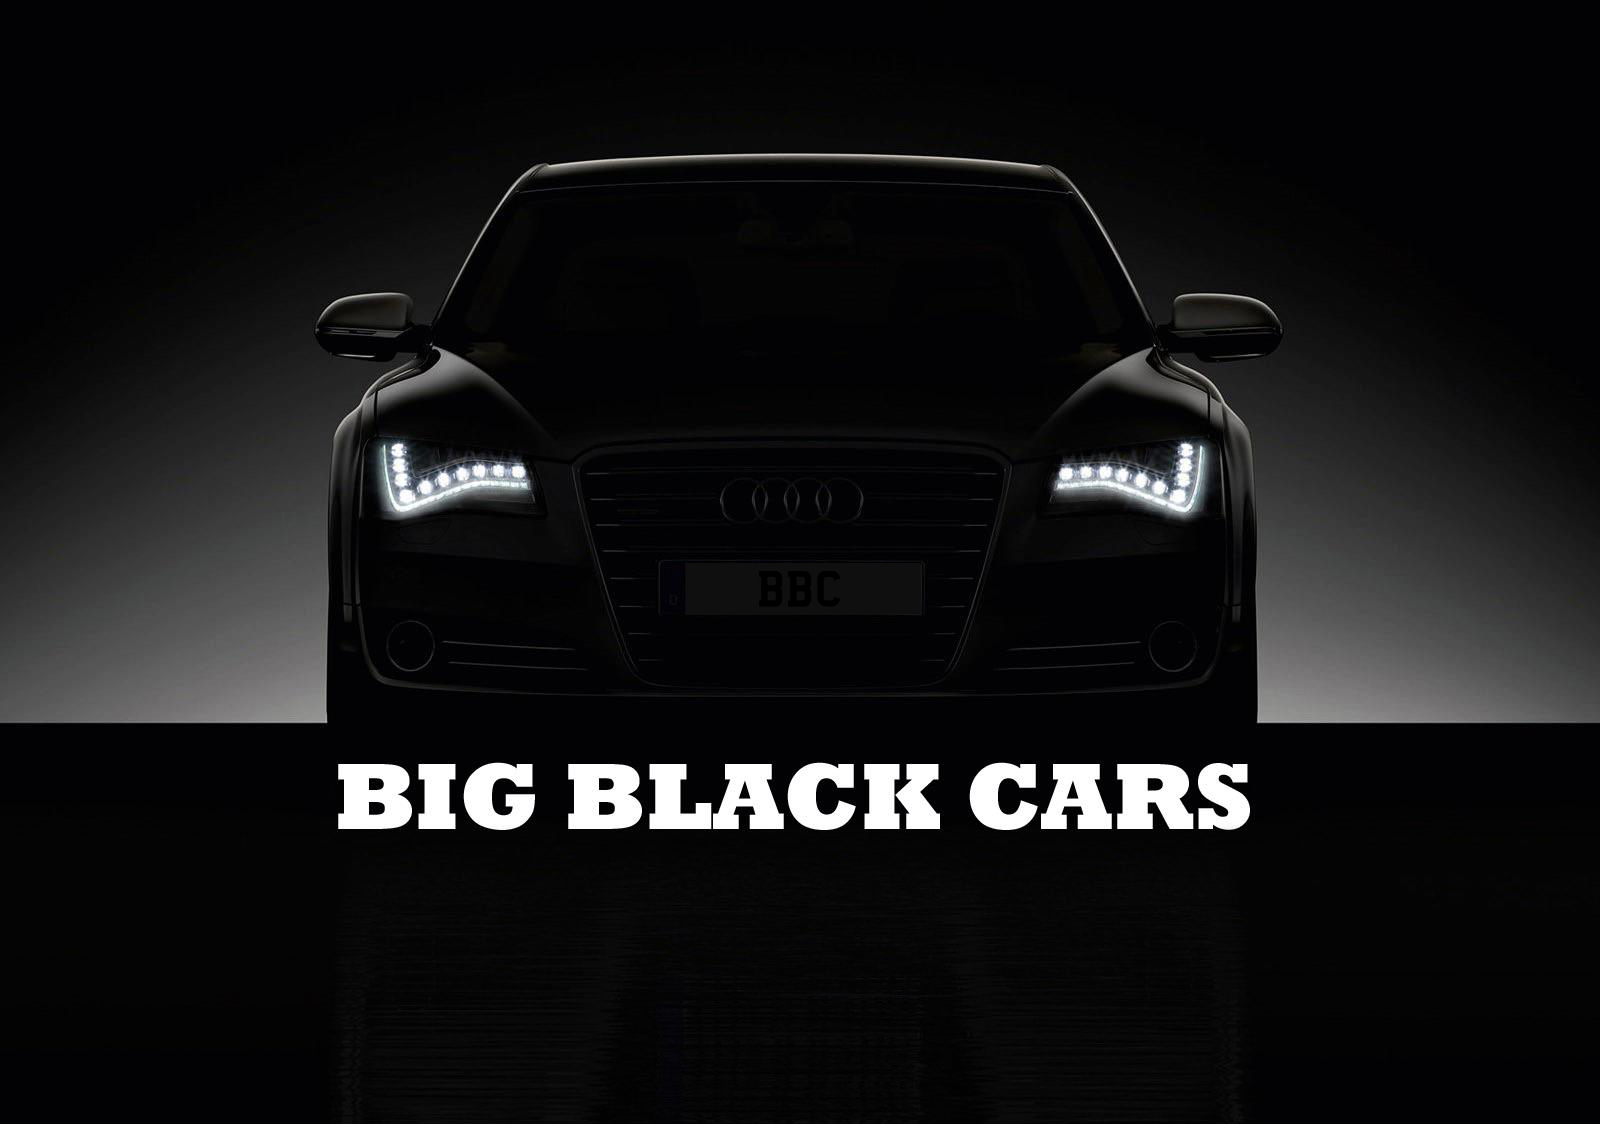 big black cars executive chauffeur cars swindon oxford. Black Bedroom Furniture Sets. Home Design Ideas